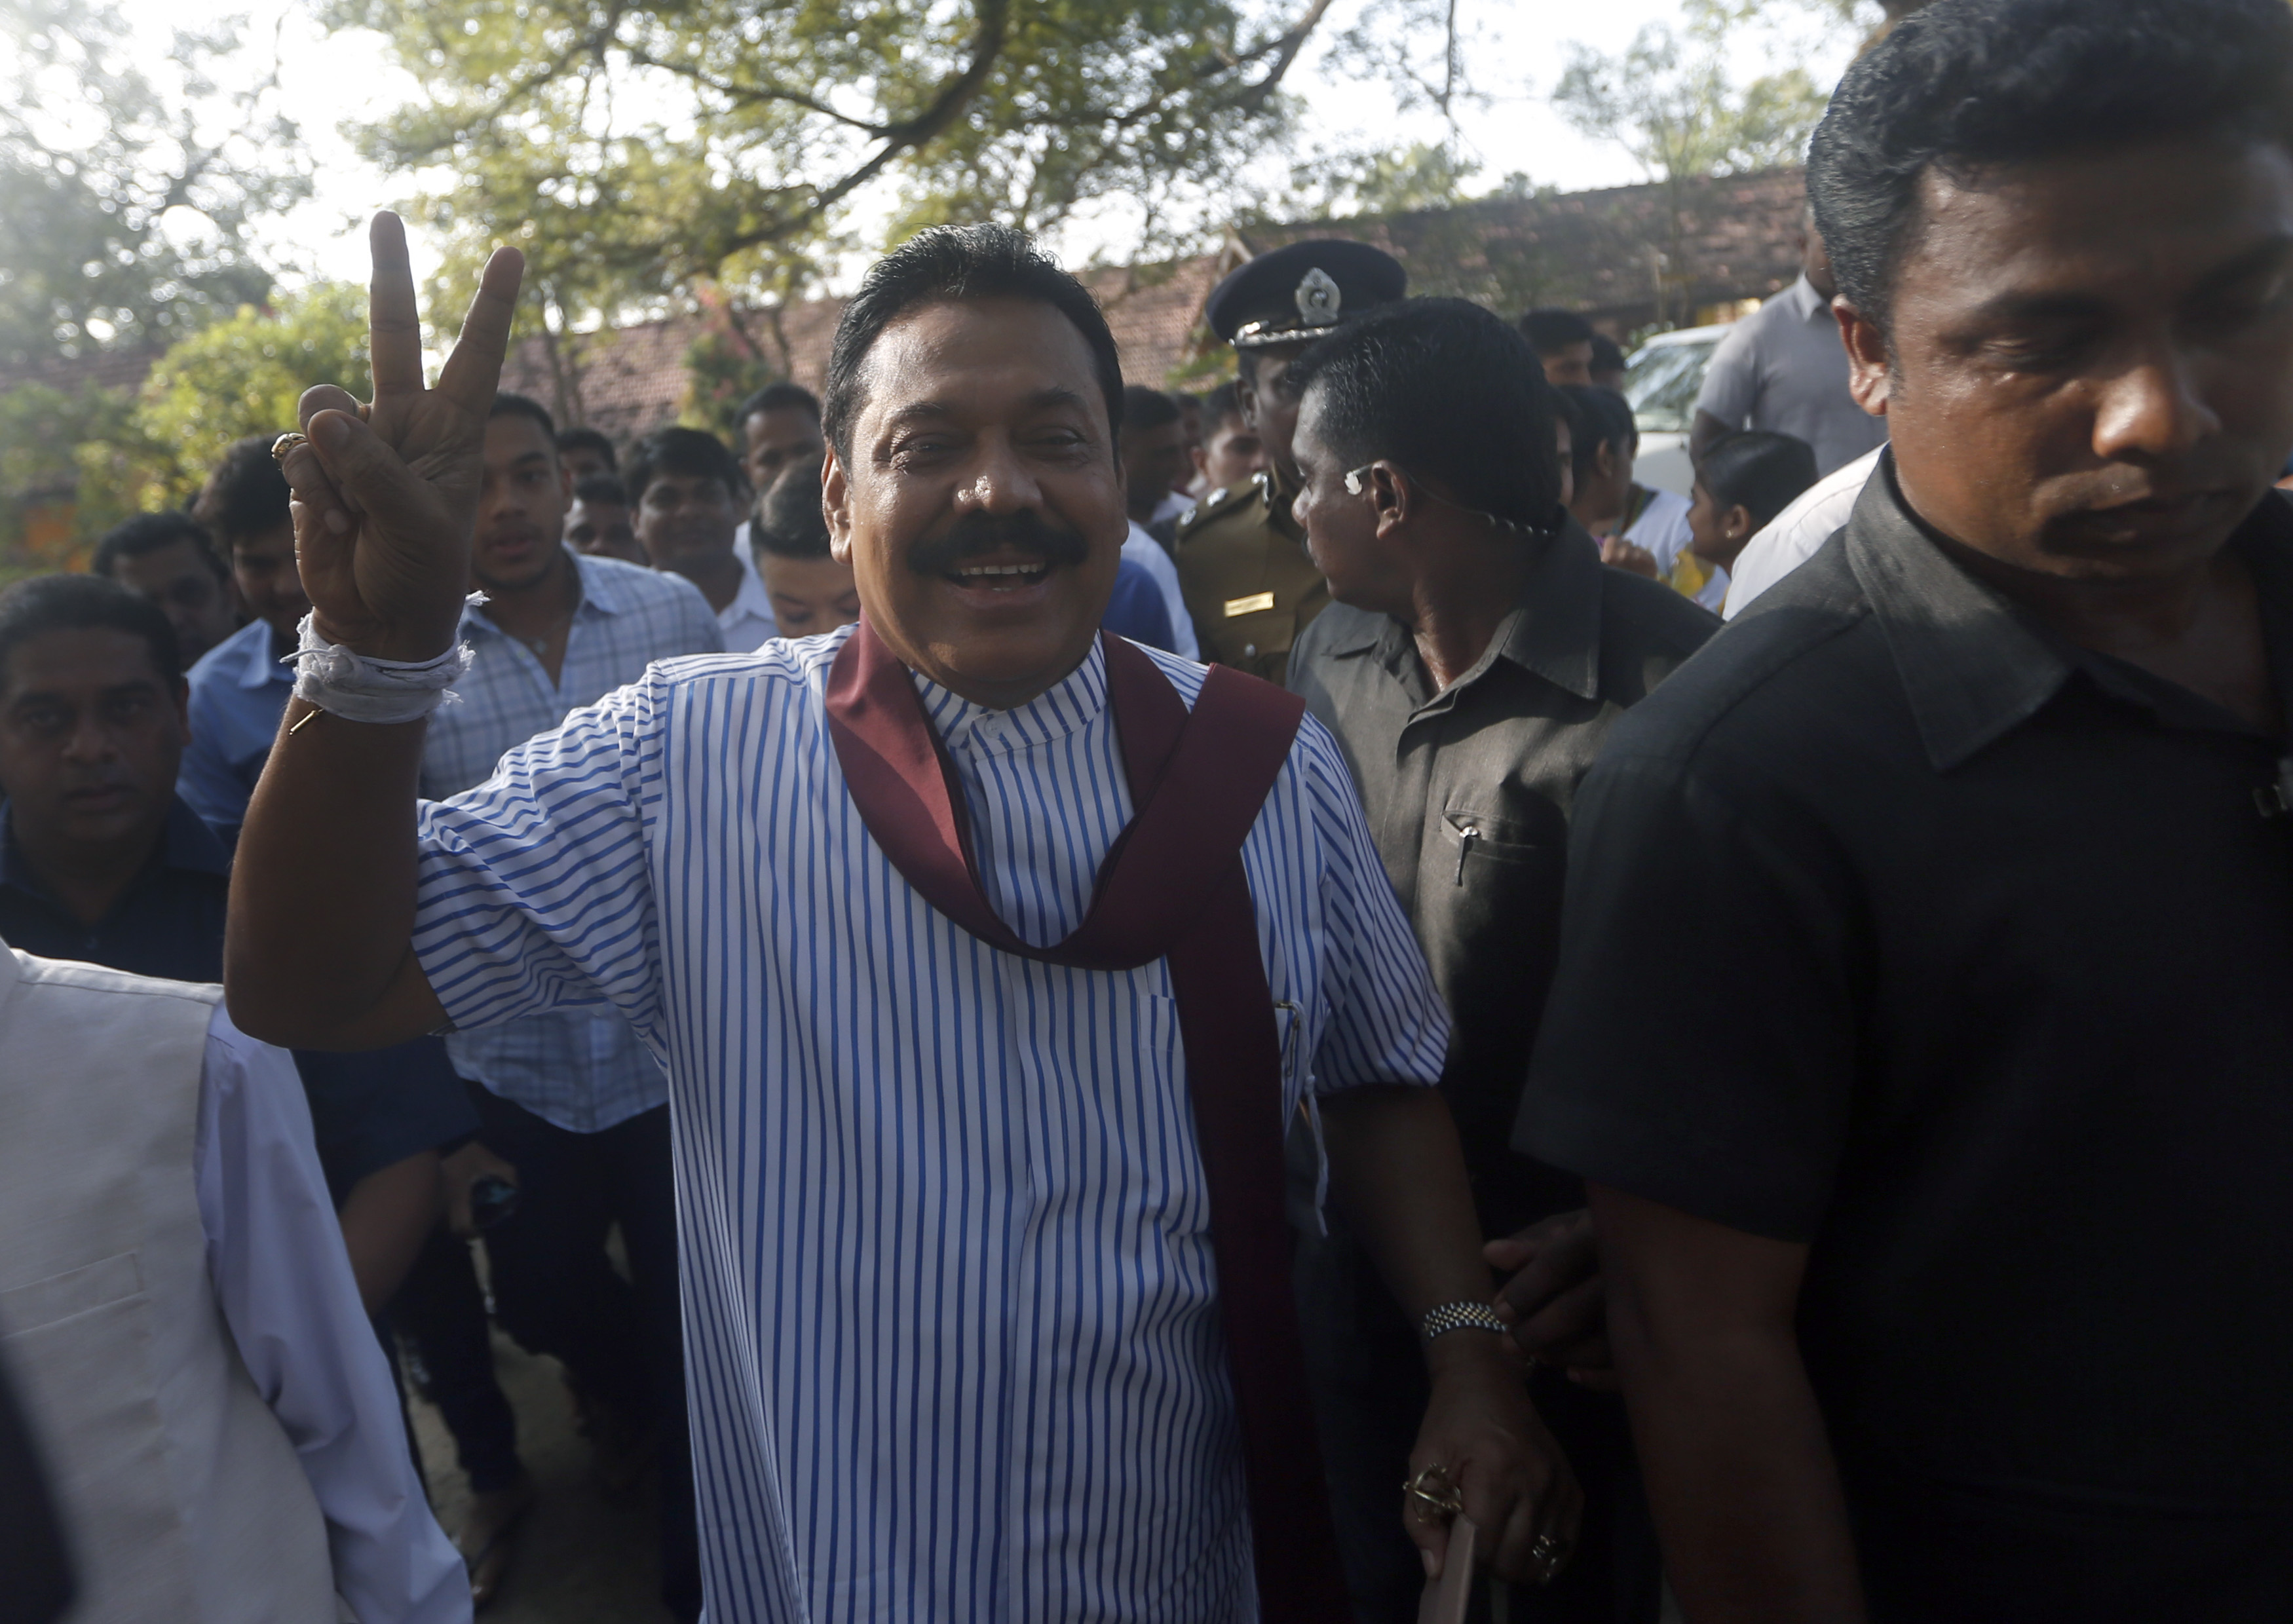 Sri Lanka's President Mahinda Rajapaksa gestures to the media after casting his vote for the presidential election, in Medamulana, January 8, 2015.